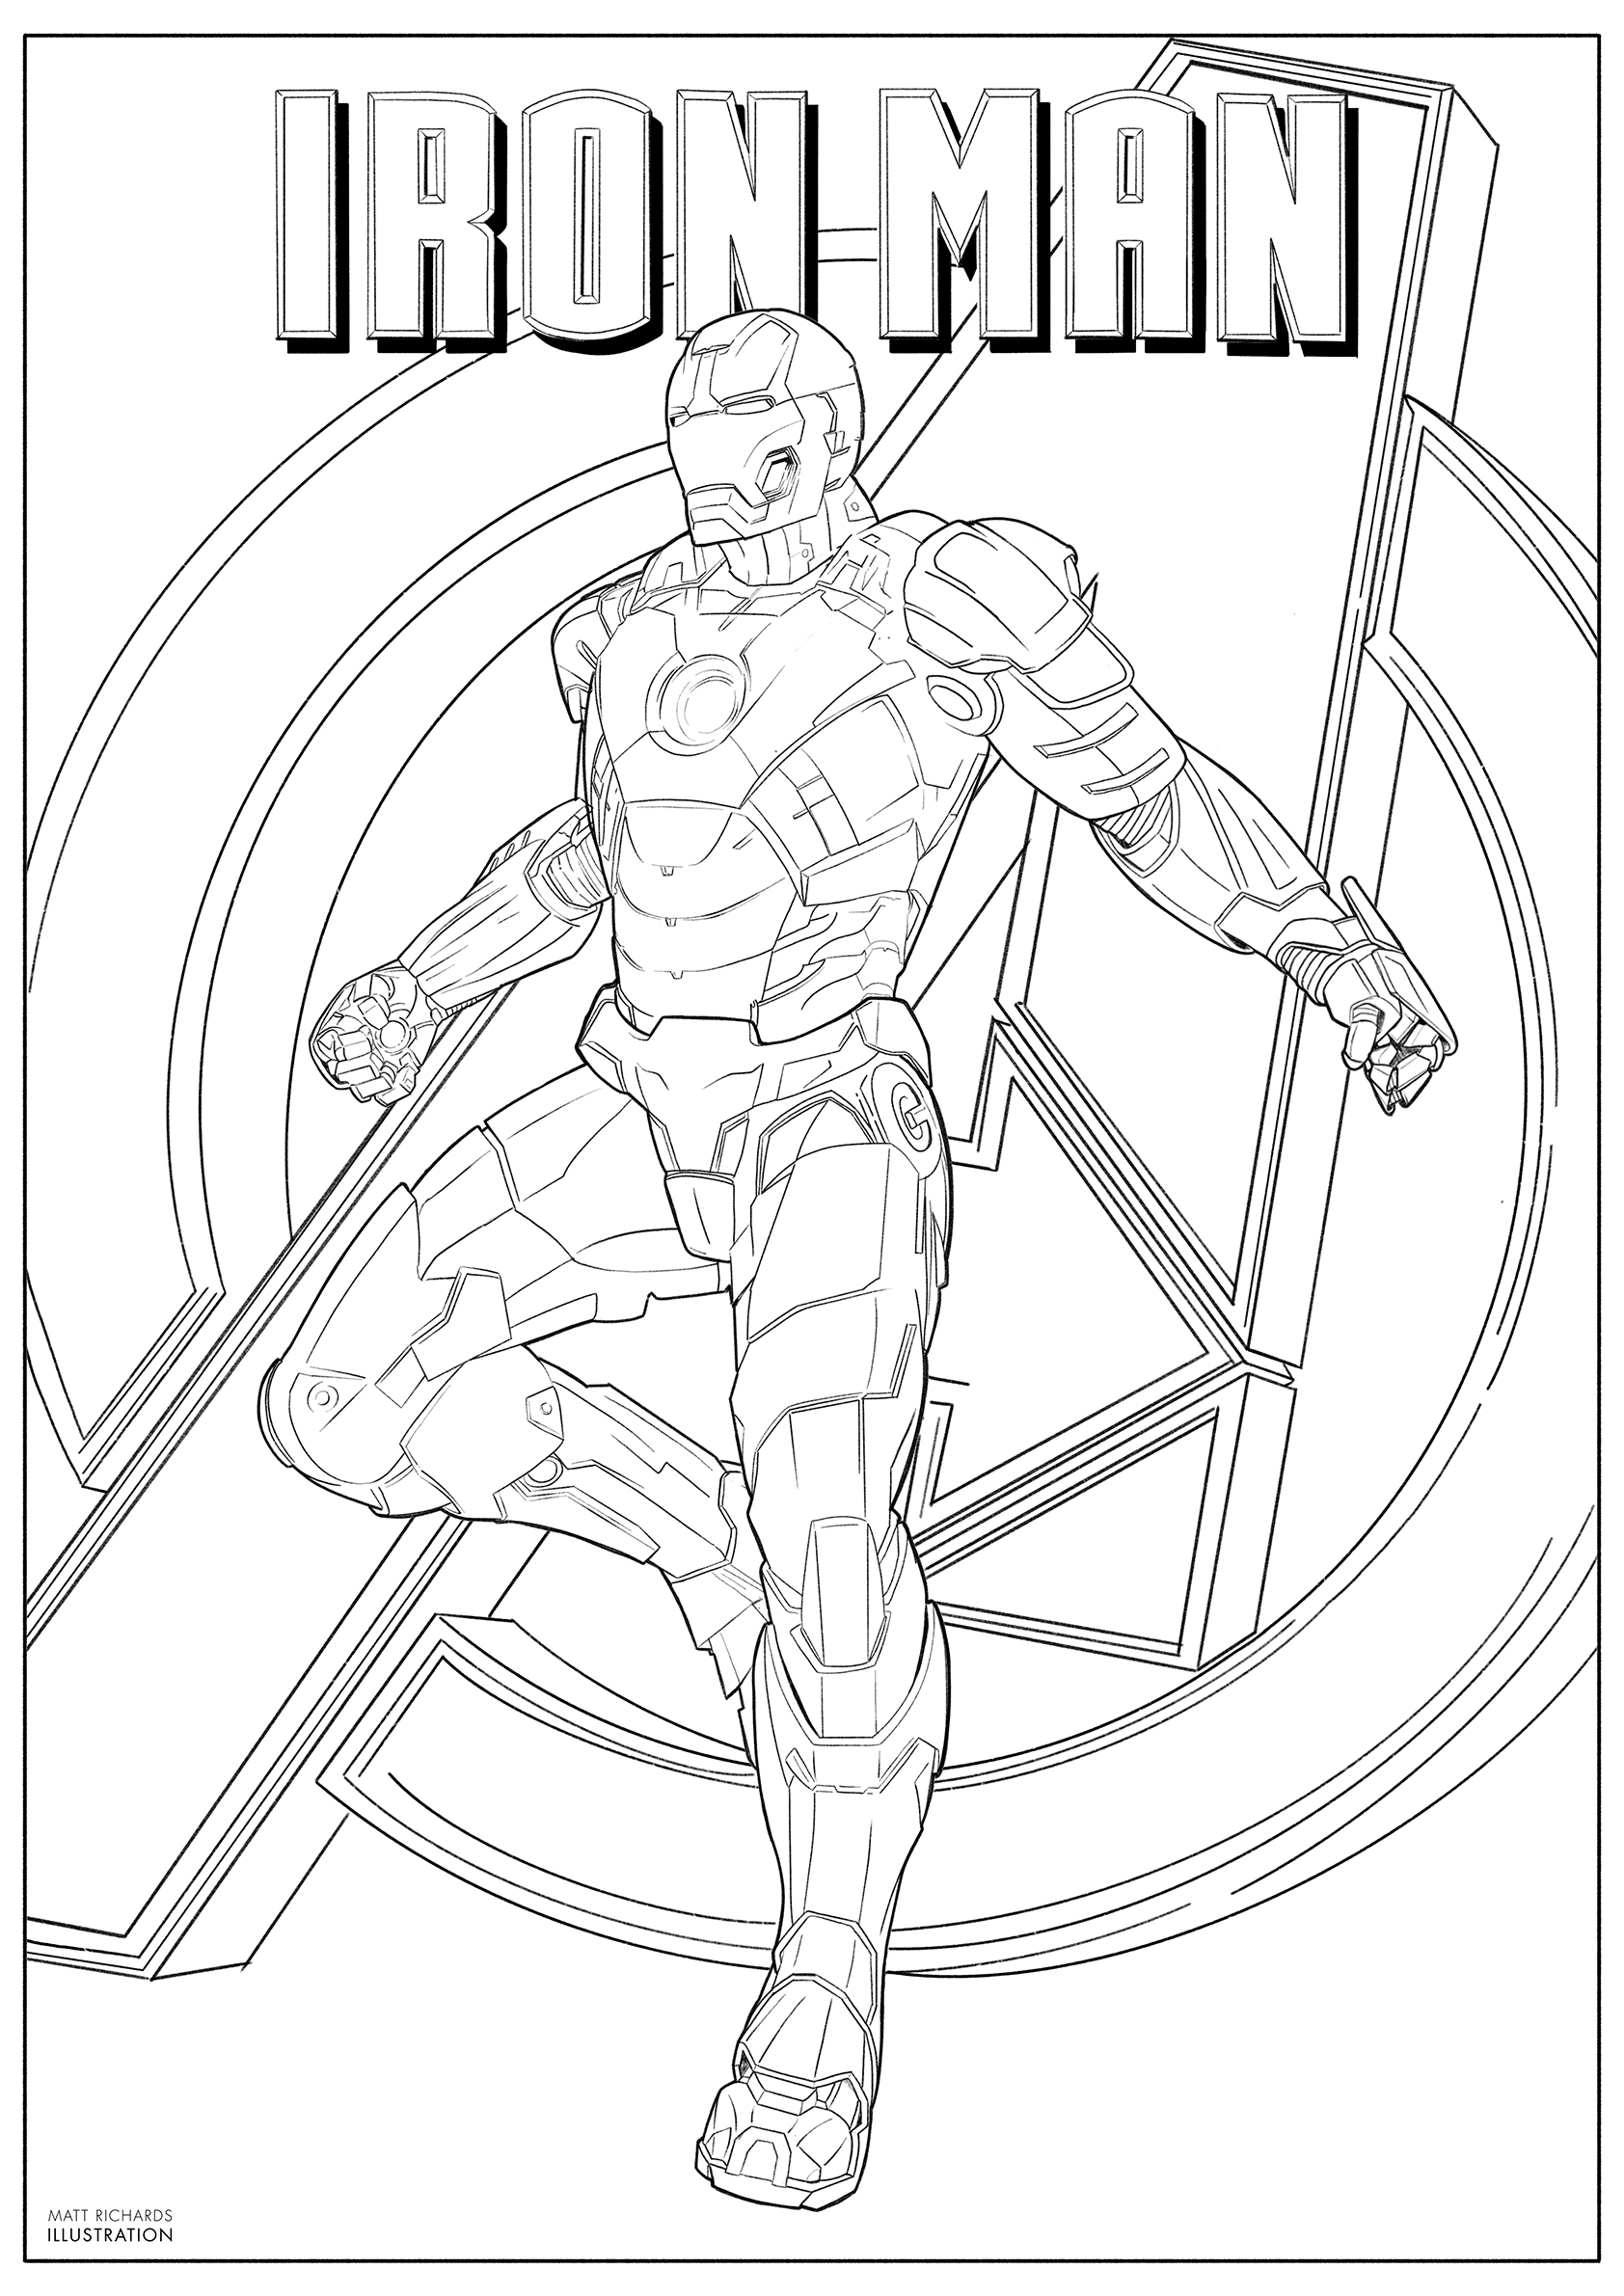 colouring in Iron Man poster